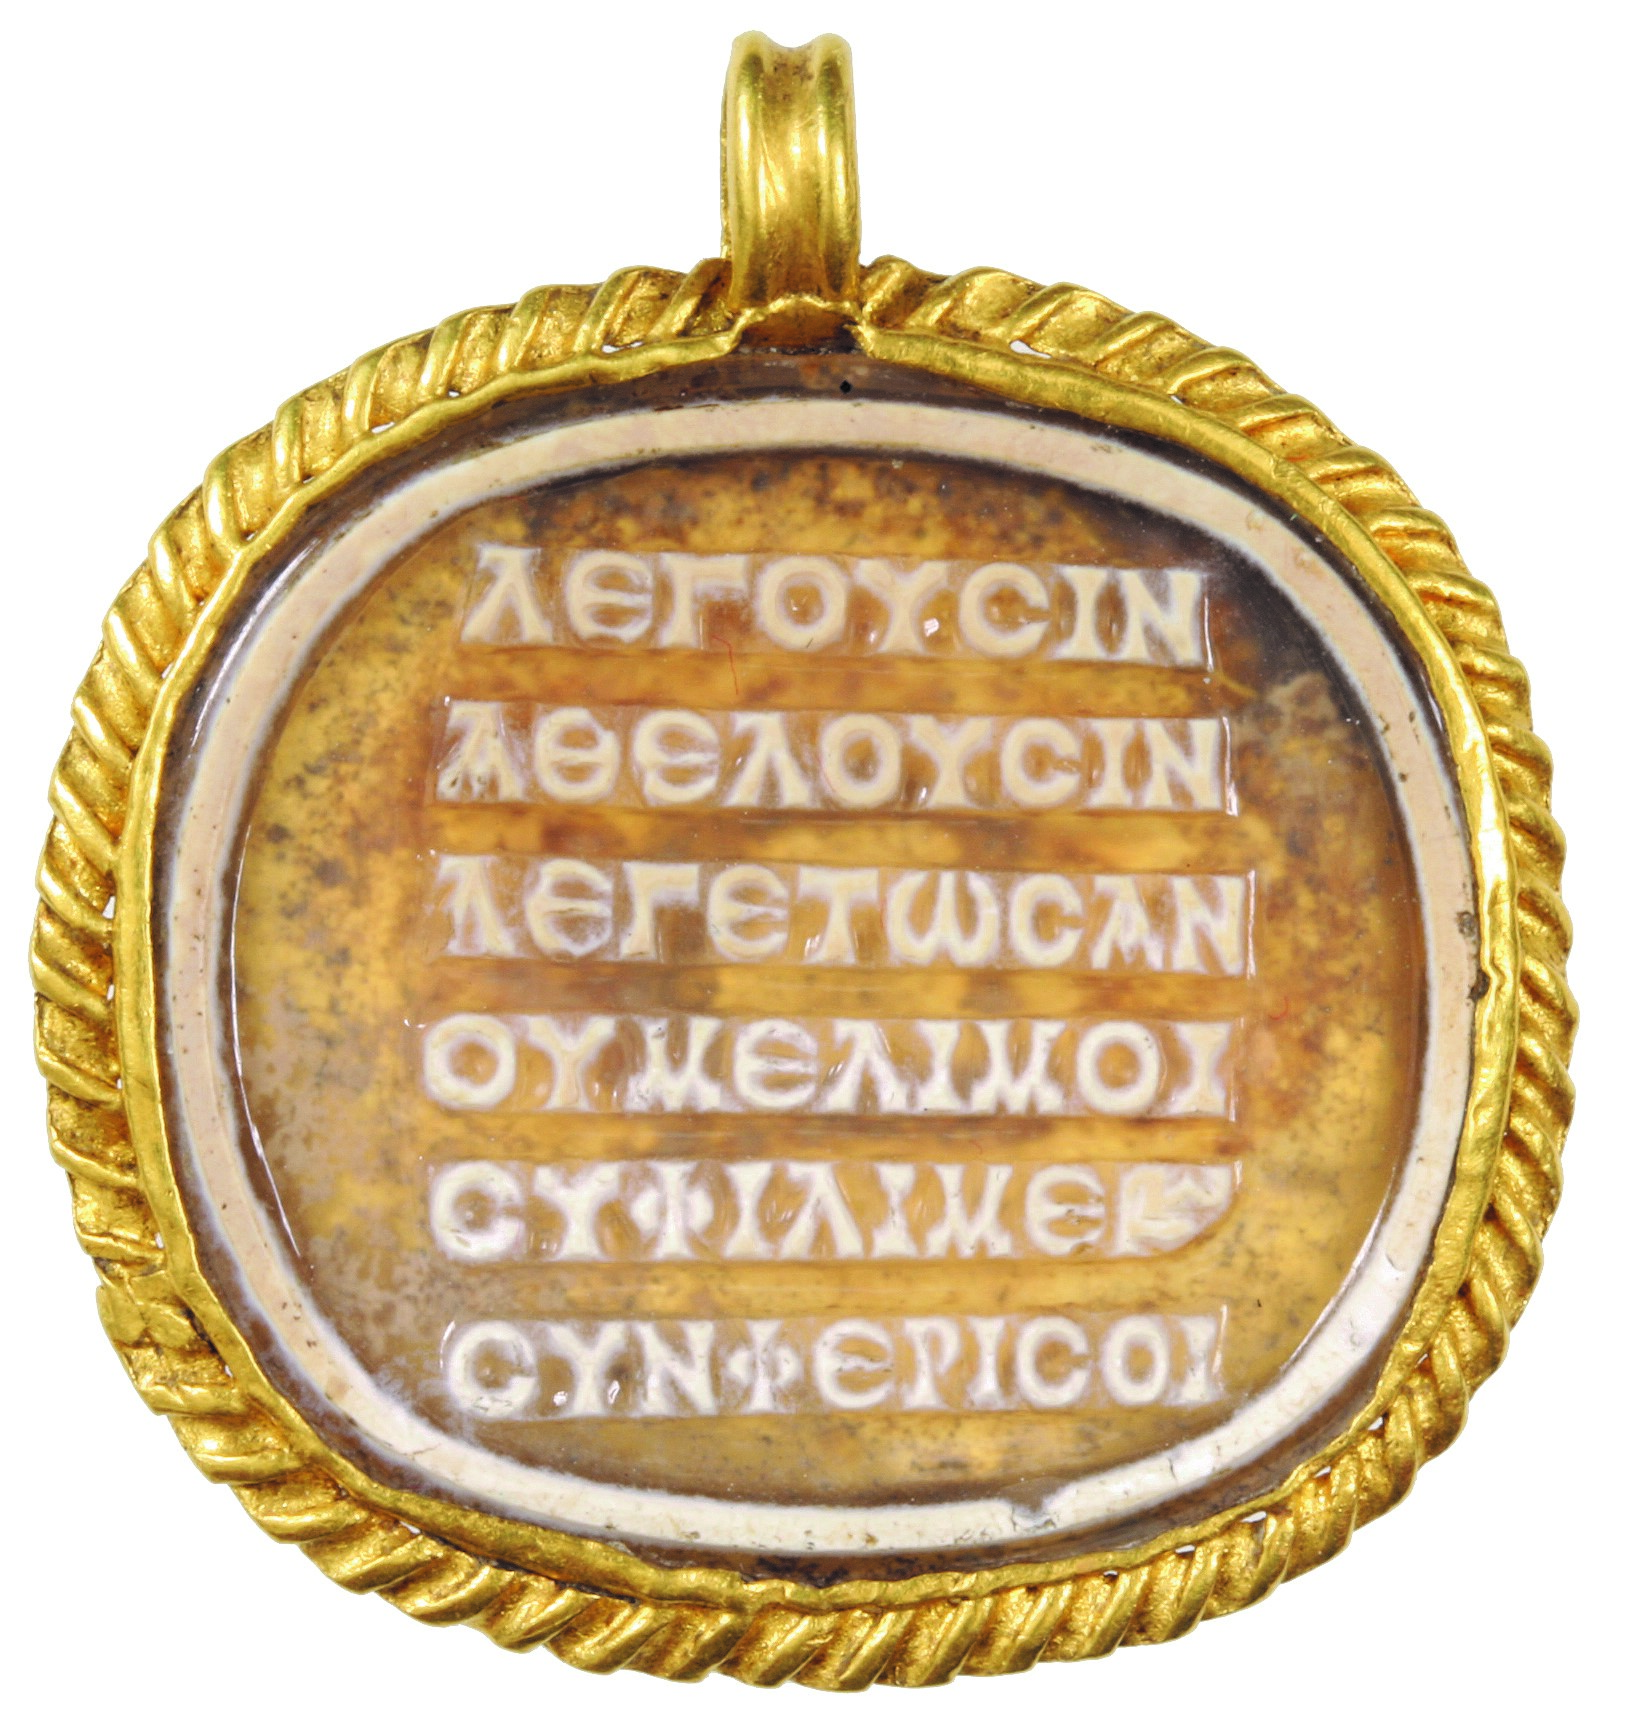 The poem inscribed on a cameo found in Hungary